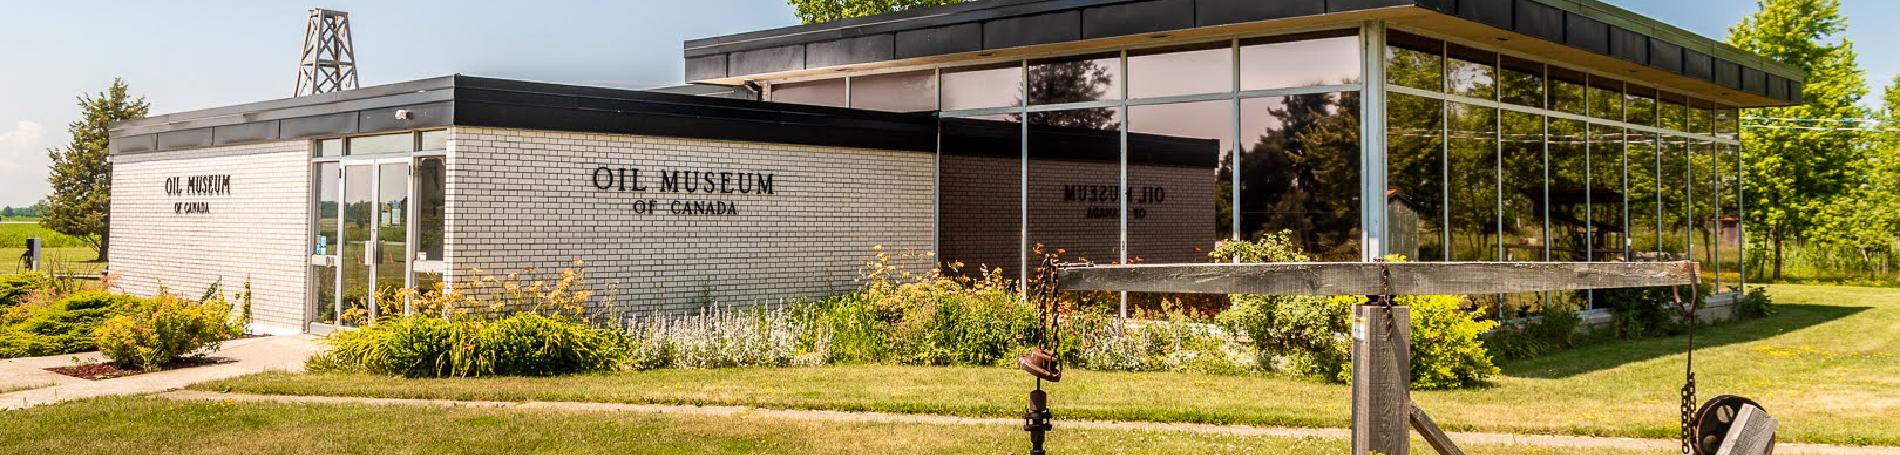 Exterior of the Oil Museum of Canada